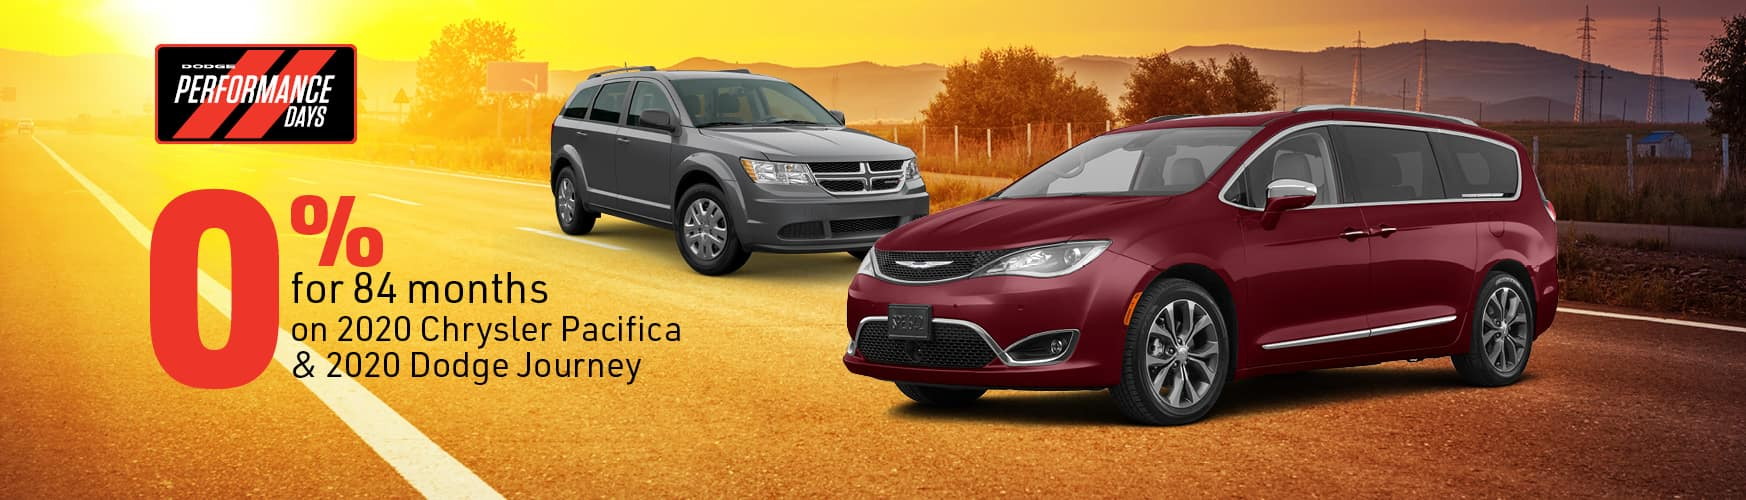 0% for 84 months on 2020 Chrysler Pacifica & 2020 Dodge Journey